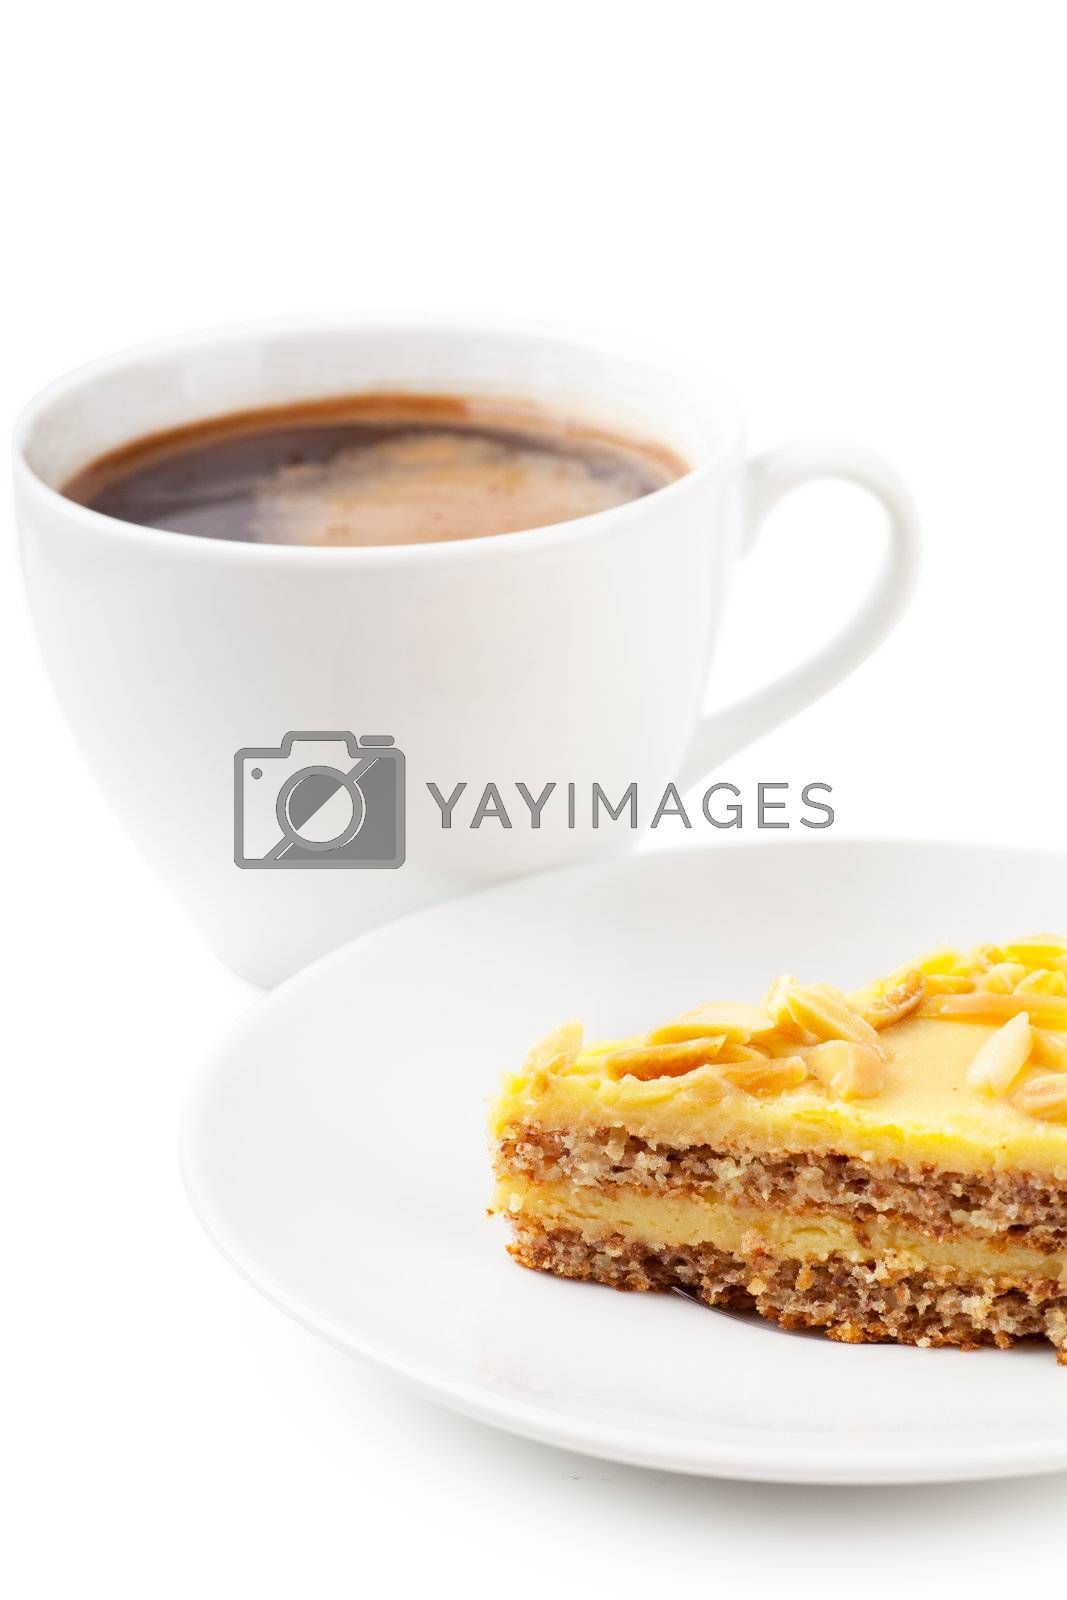 Cup of coffee and pie on a white plate